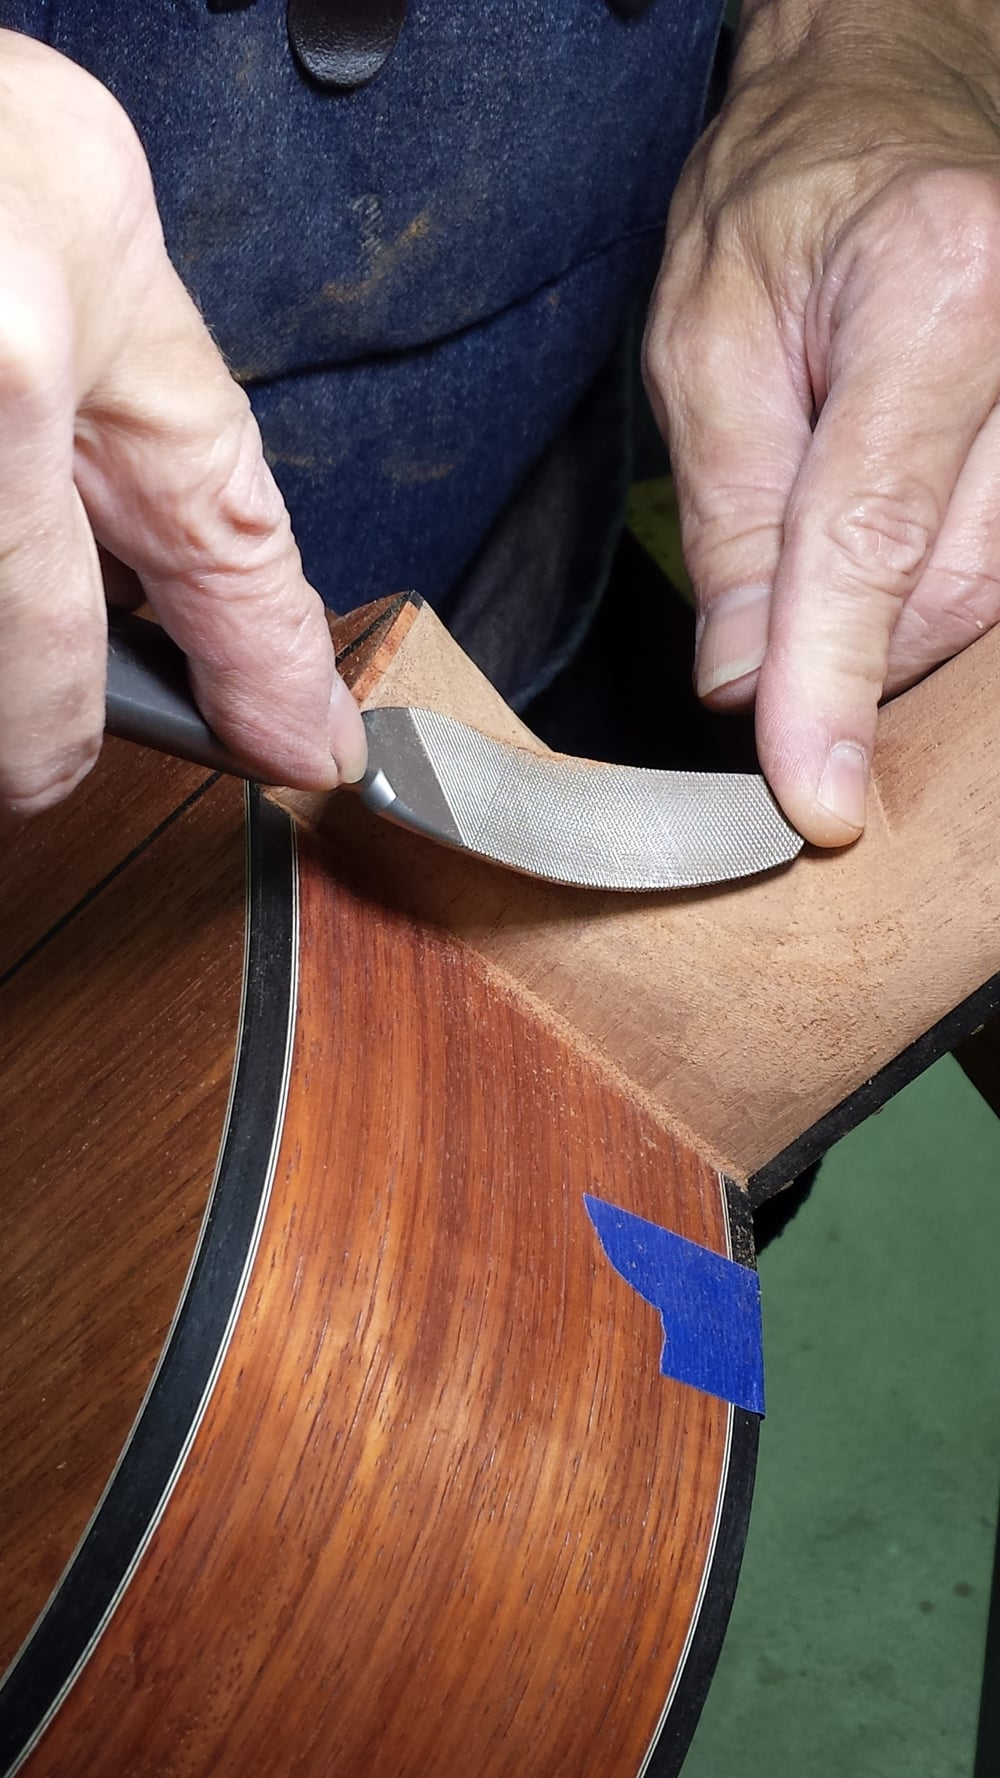 Shaping the heel - final stages